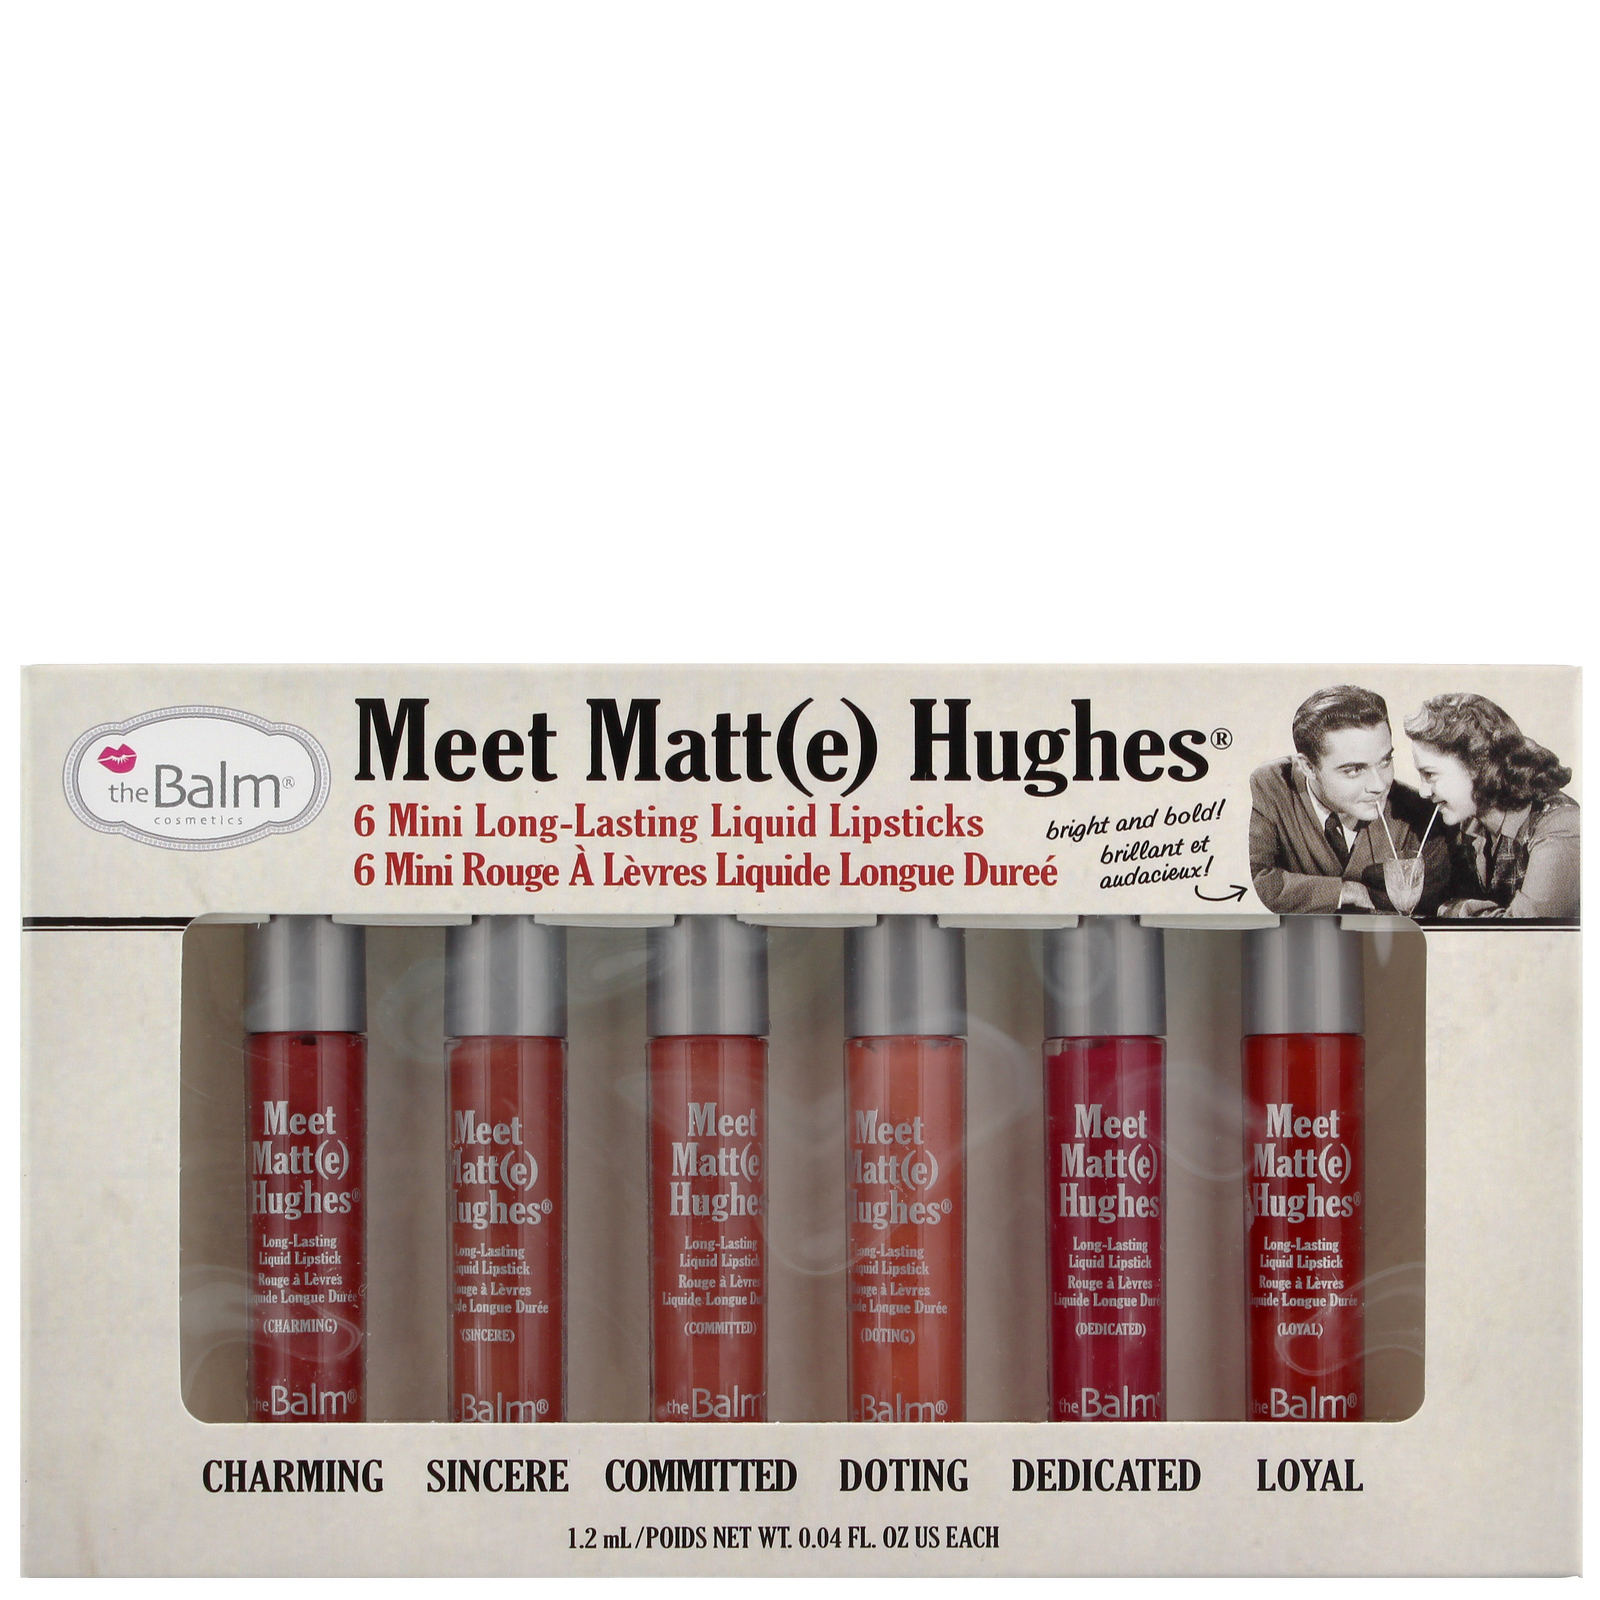 theBalm Cosmetics Lips Meet Matt(e) Hughes: Bright and Bold Set